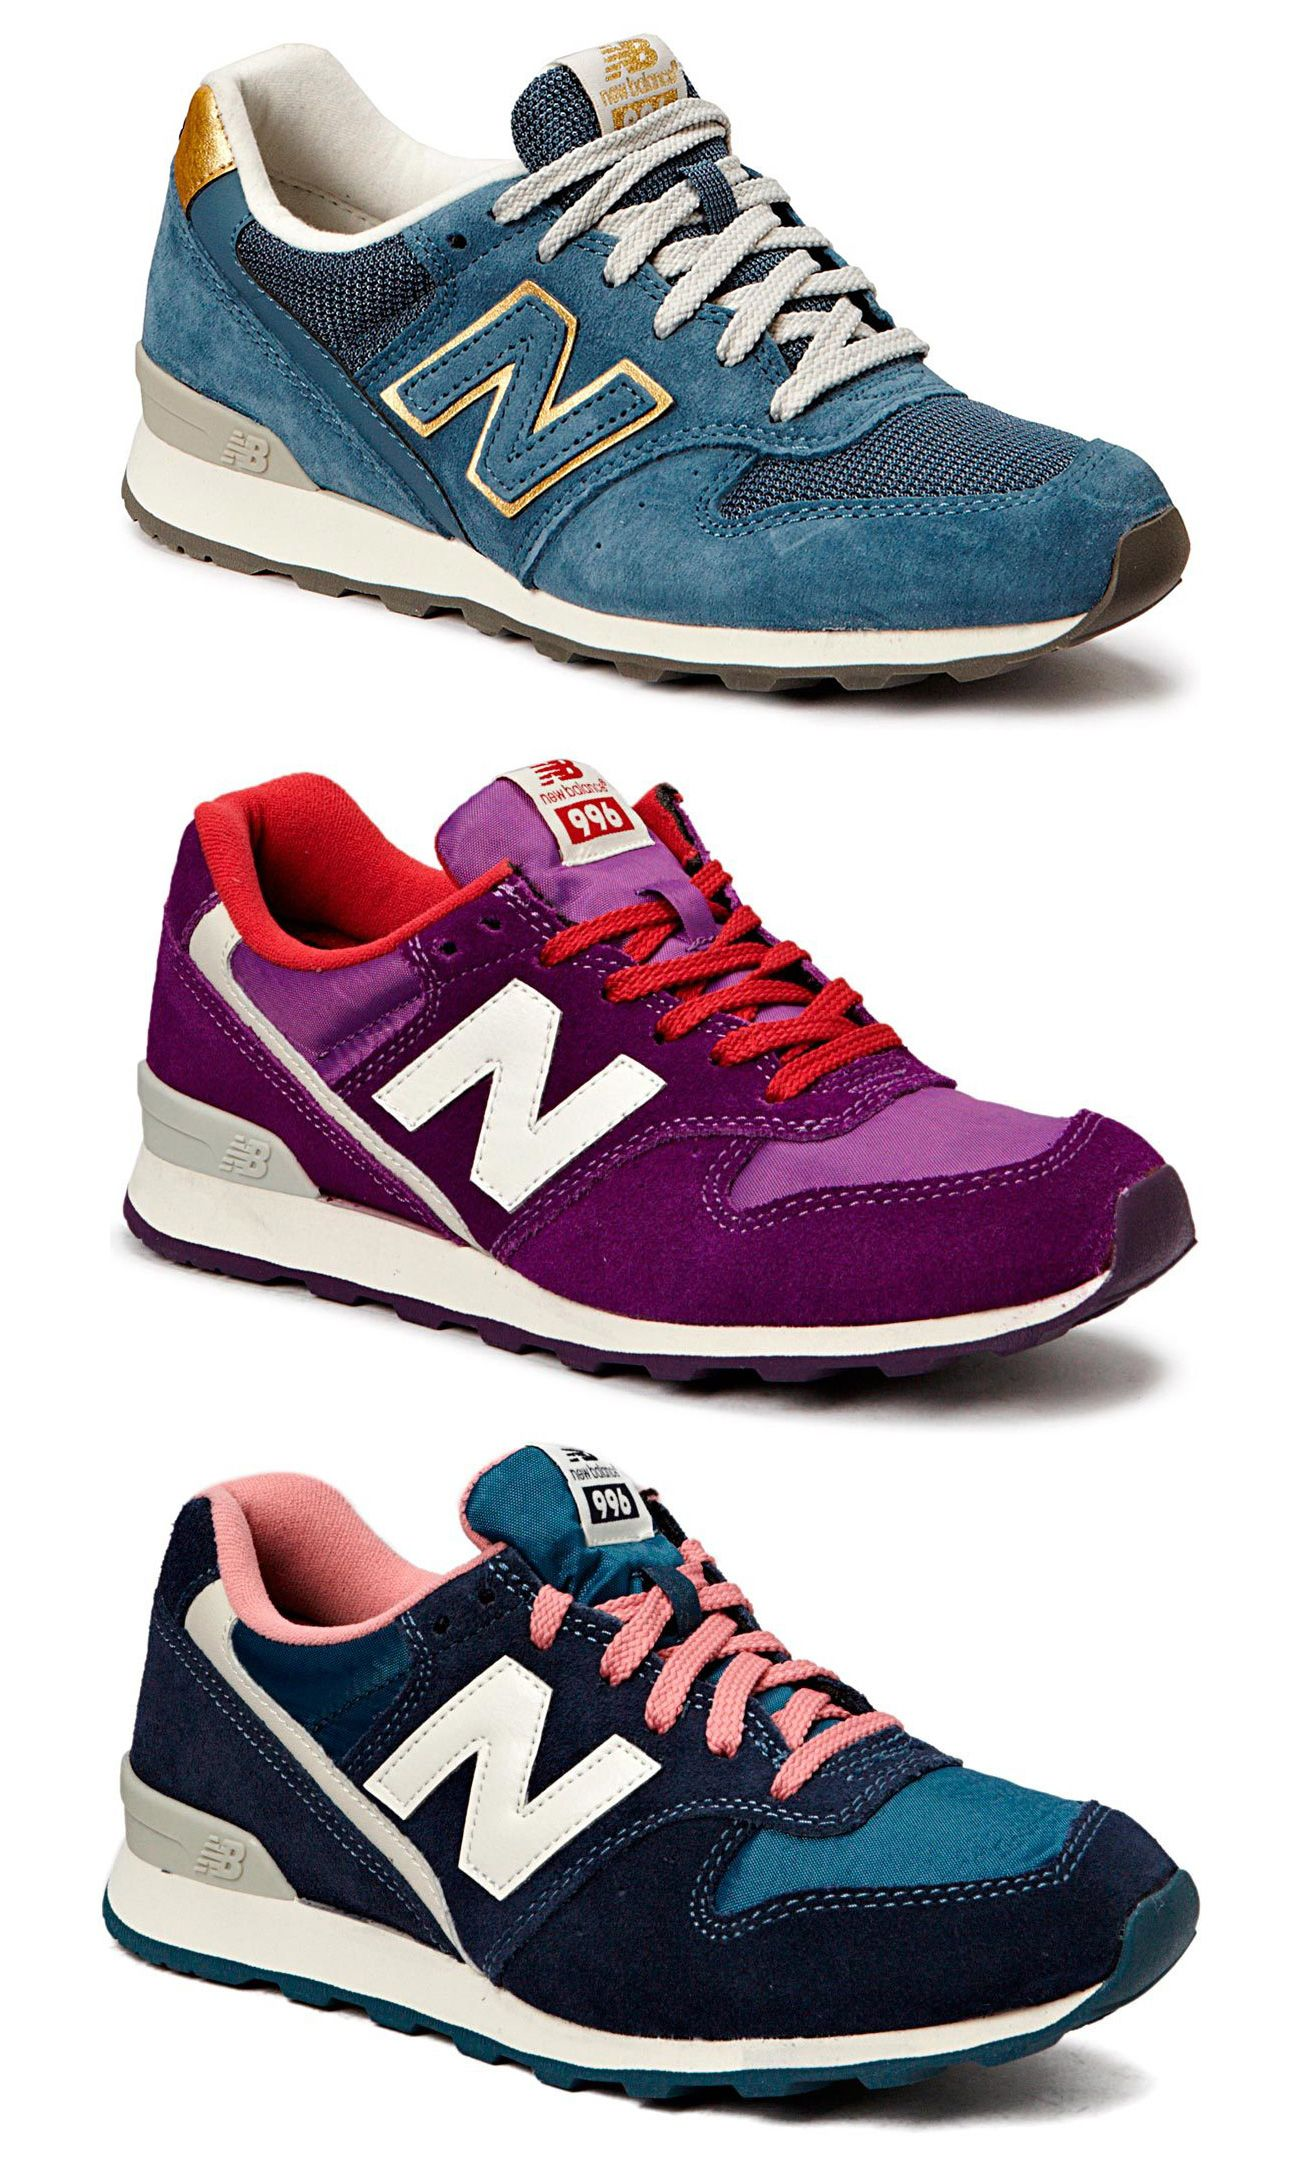 9 Most Stylish Running Sneakers | New balance shoes ...